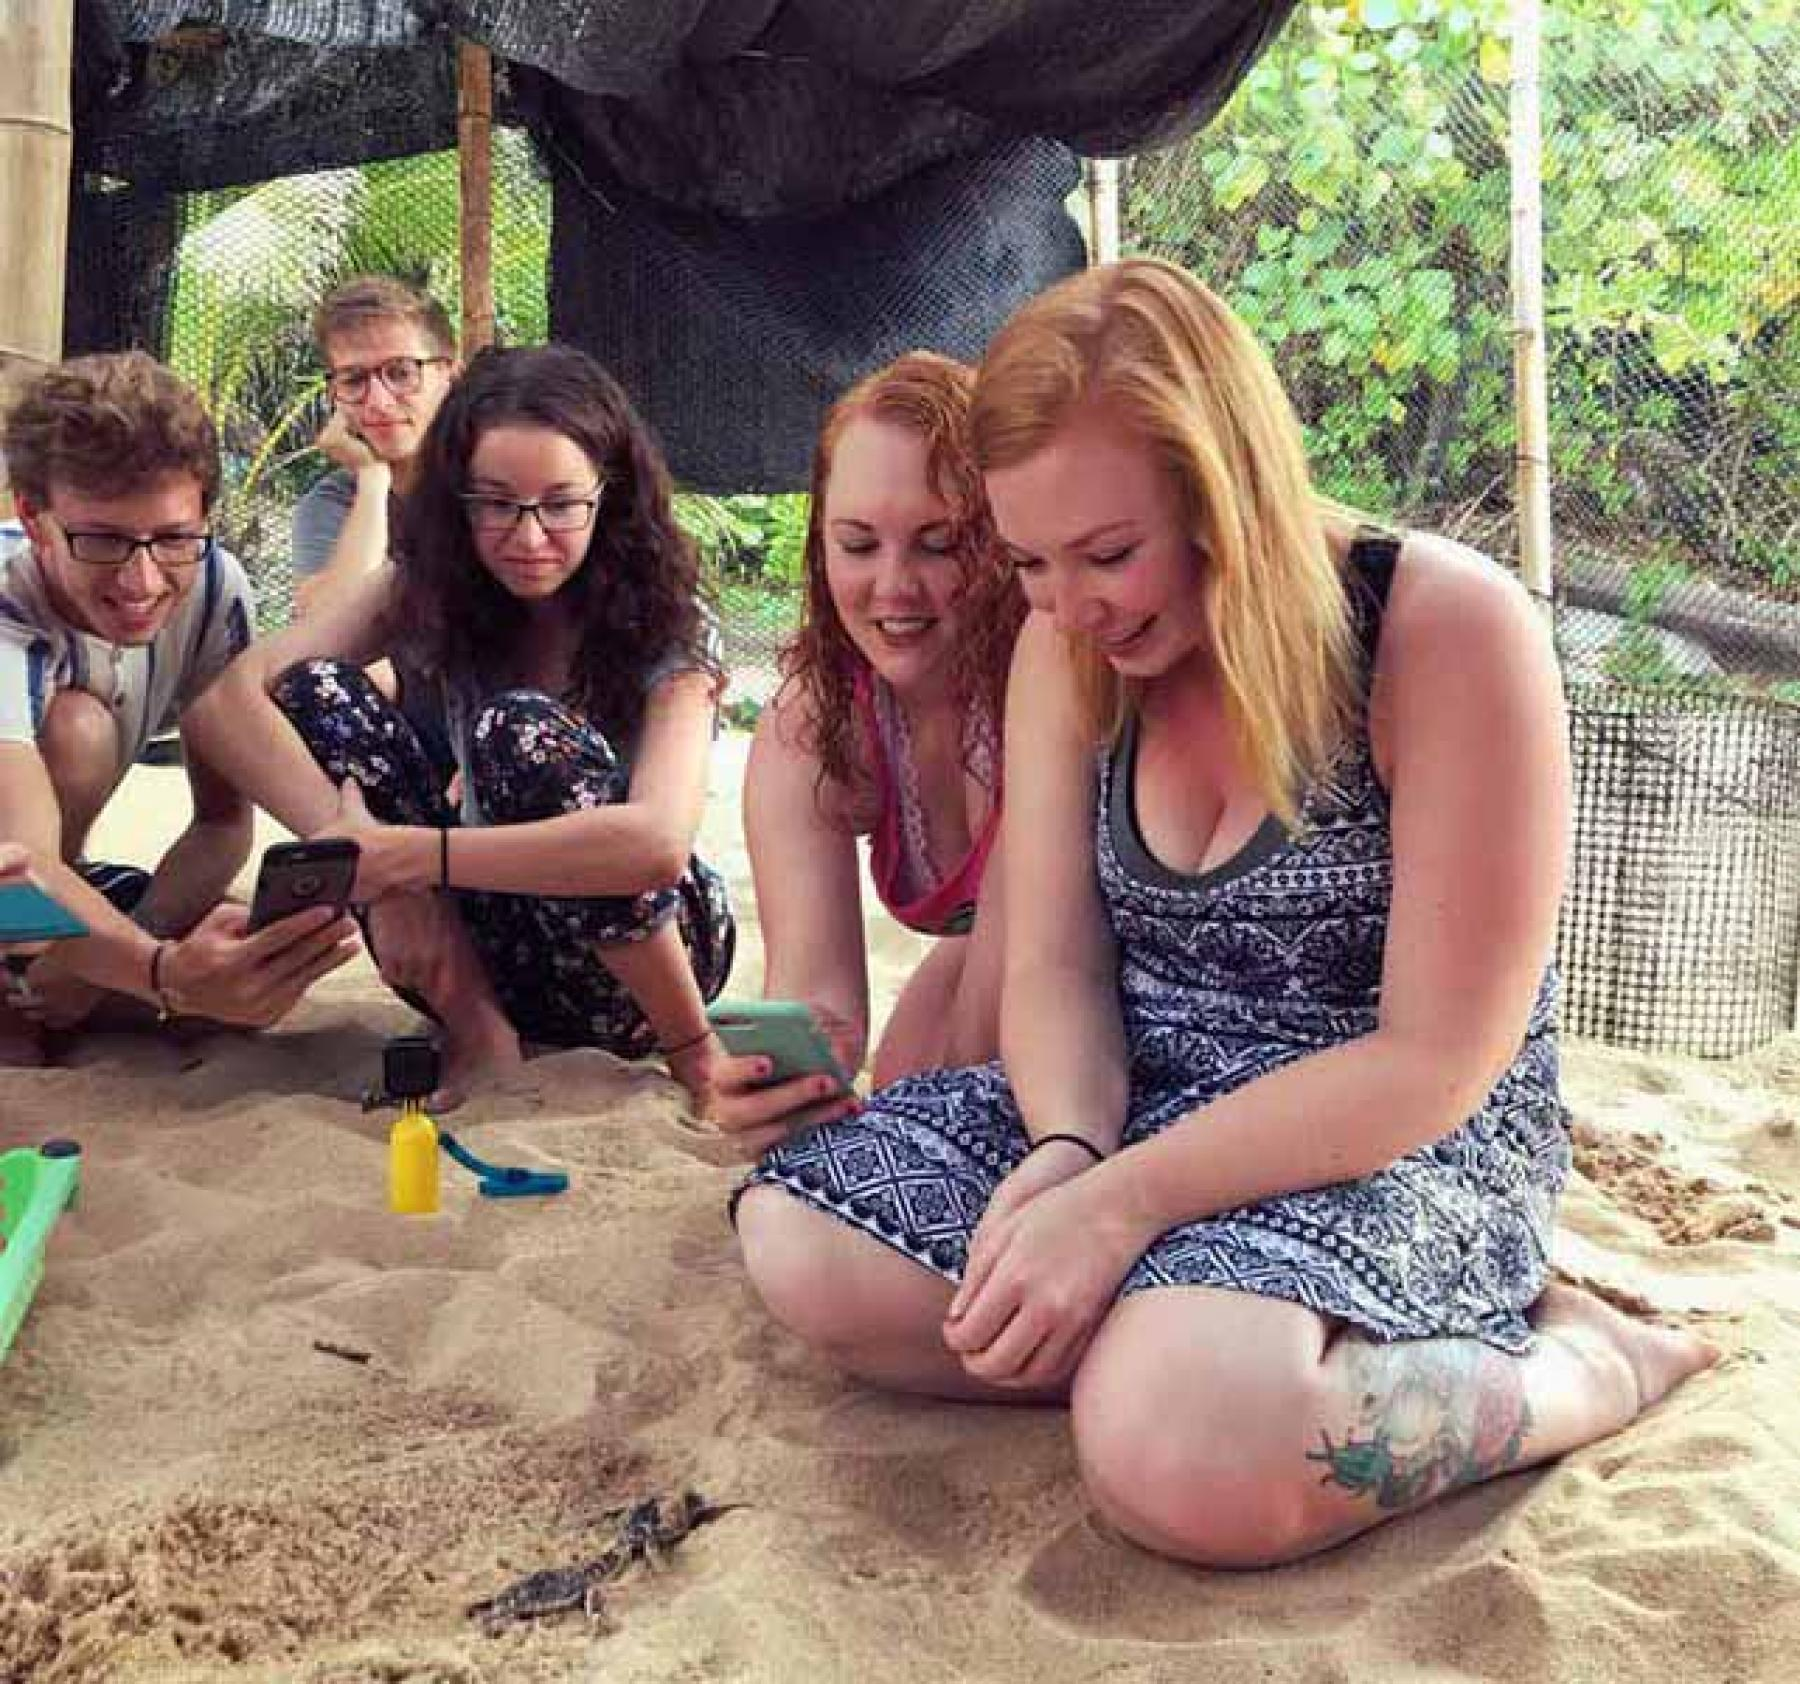 5D4N Volunteer for Baby Sea Turtles, Cats, Kittens + Try Diving starting at Tioman Island, Mersing, Pahang, Malaysia